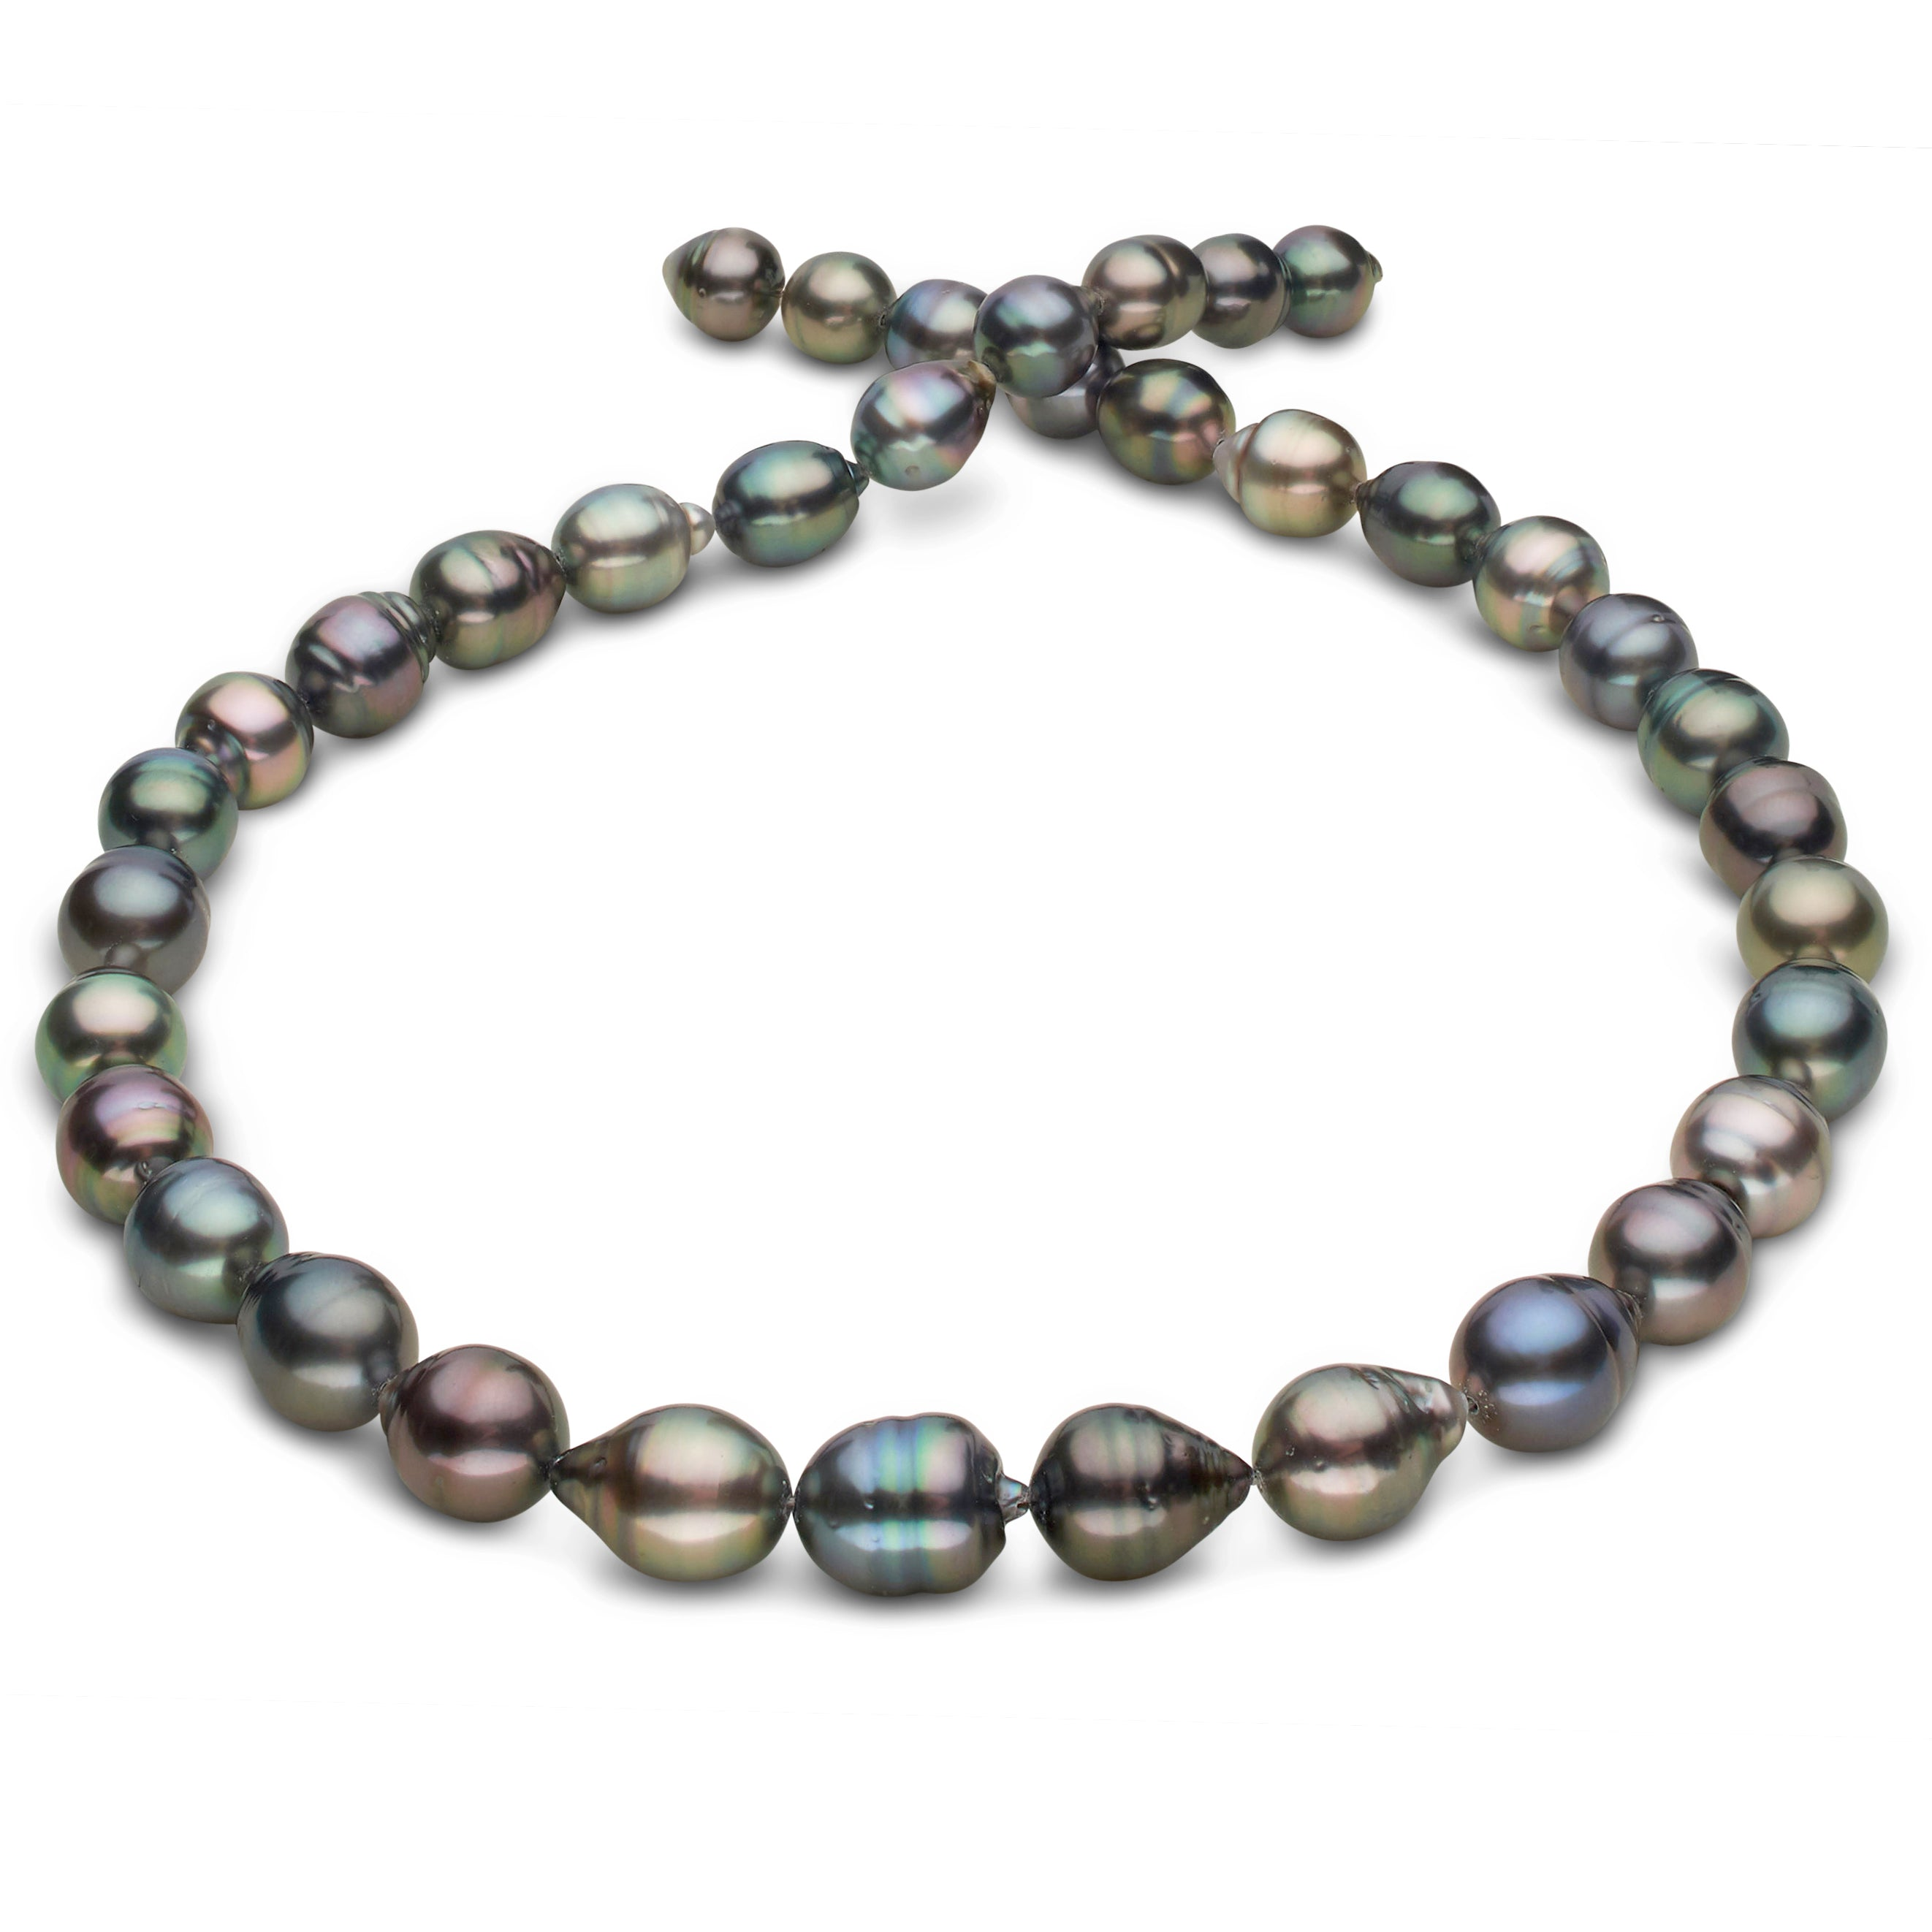 Freshwater Pearl 8-9mm Offround Peacock Black Colour dyed Grade AA Loose Beads 15 inch Jewelry Supply Bracelet Necklace Material Support